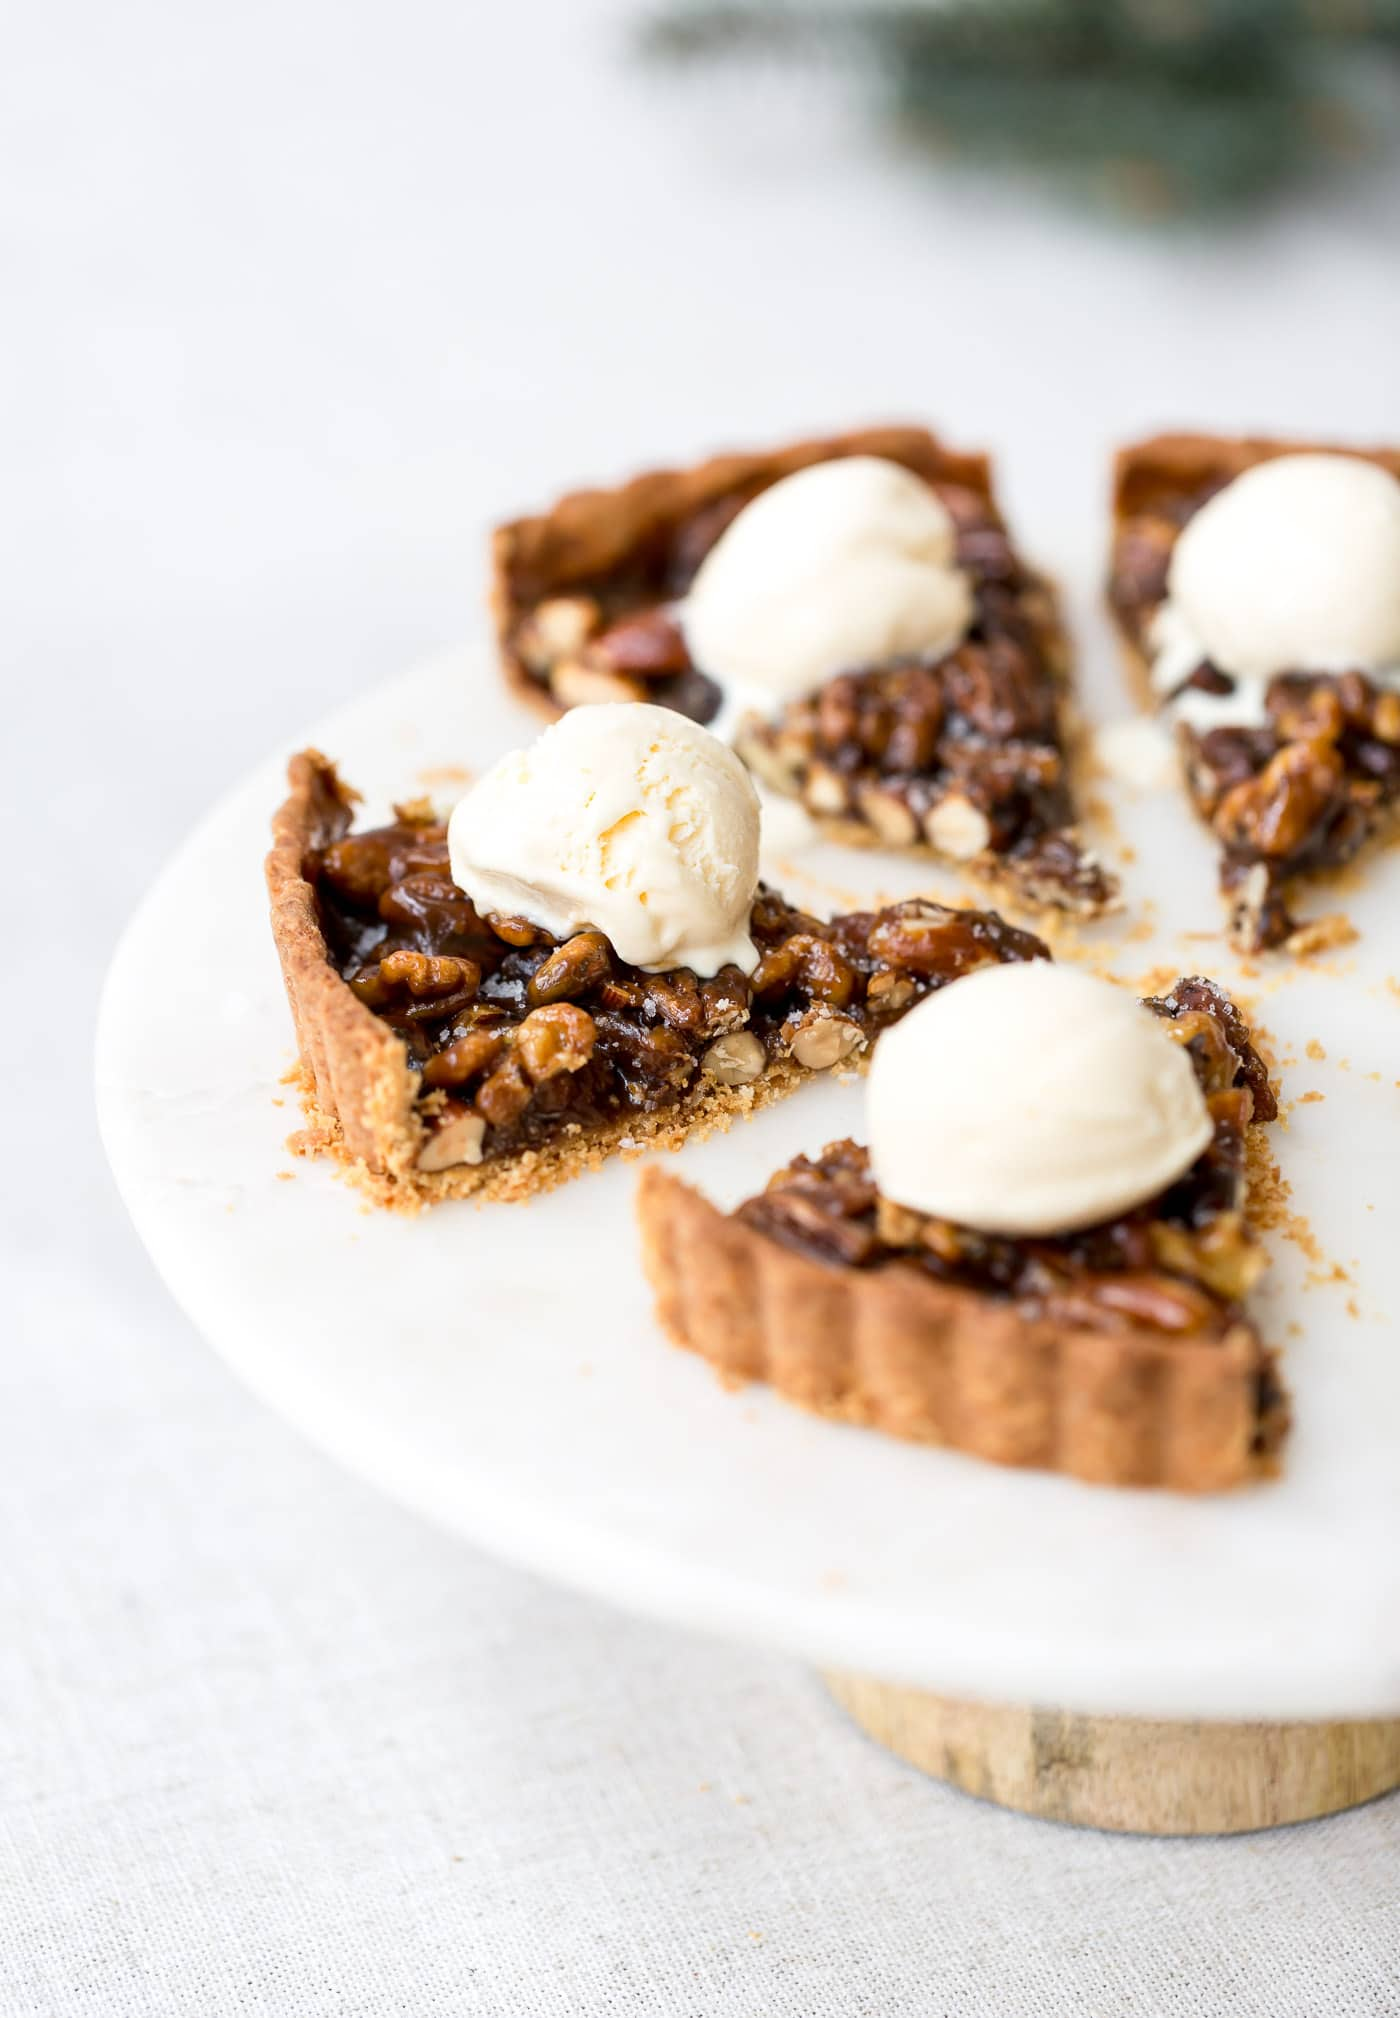 A few slices of caramel nut tart are topped off with a scoop of vanilla ice cream.